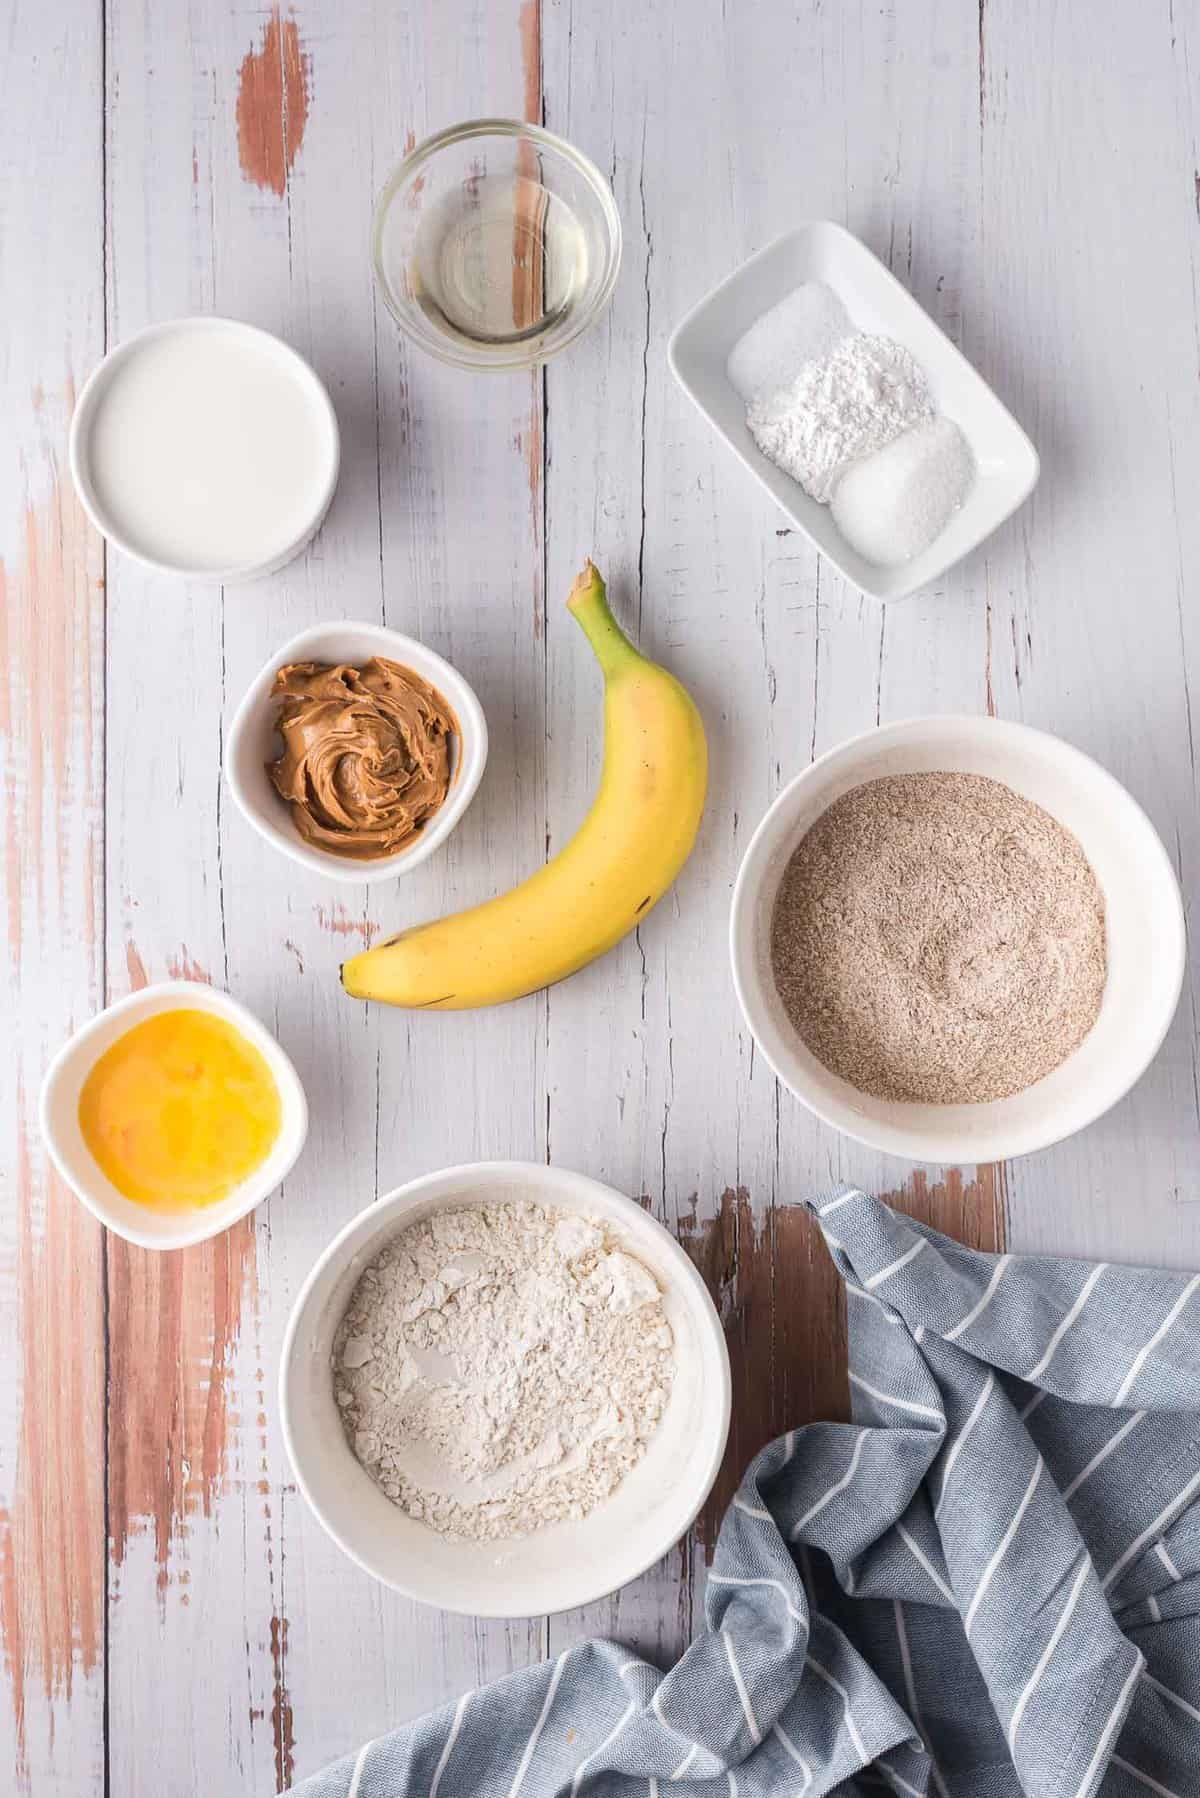 Overhead view of ingredients in small bowls, and a banana.